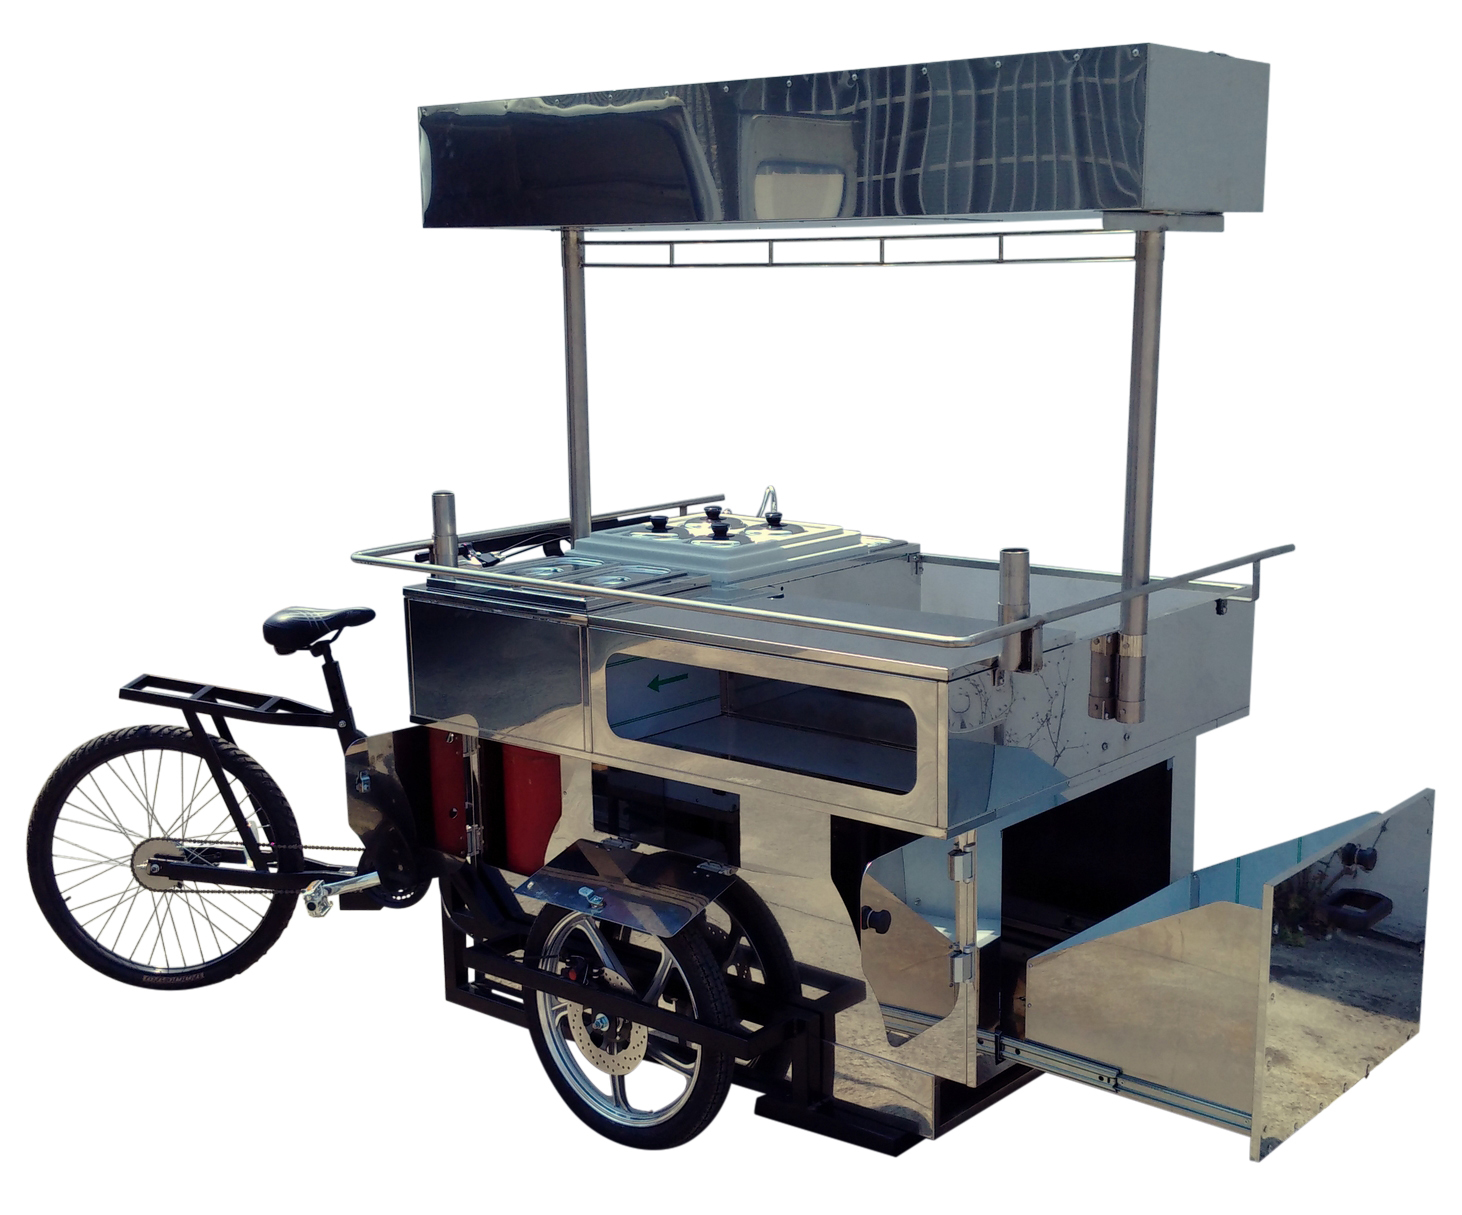 STREET_FOOD_BIKE_CHEF_ON_TRICYCLE_FOR_COOKING_IN_STREET_KITCHEN_3